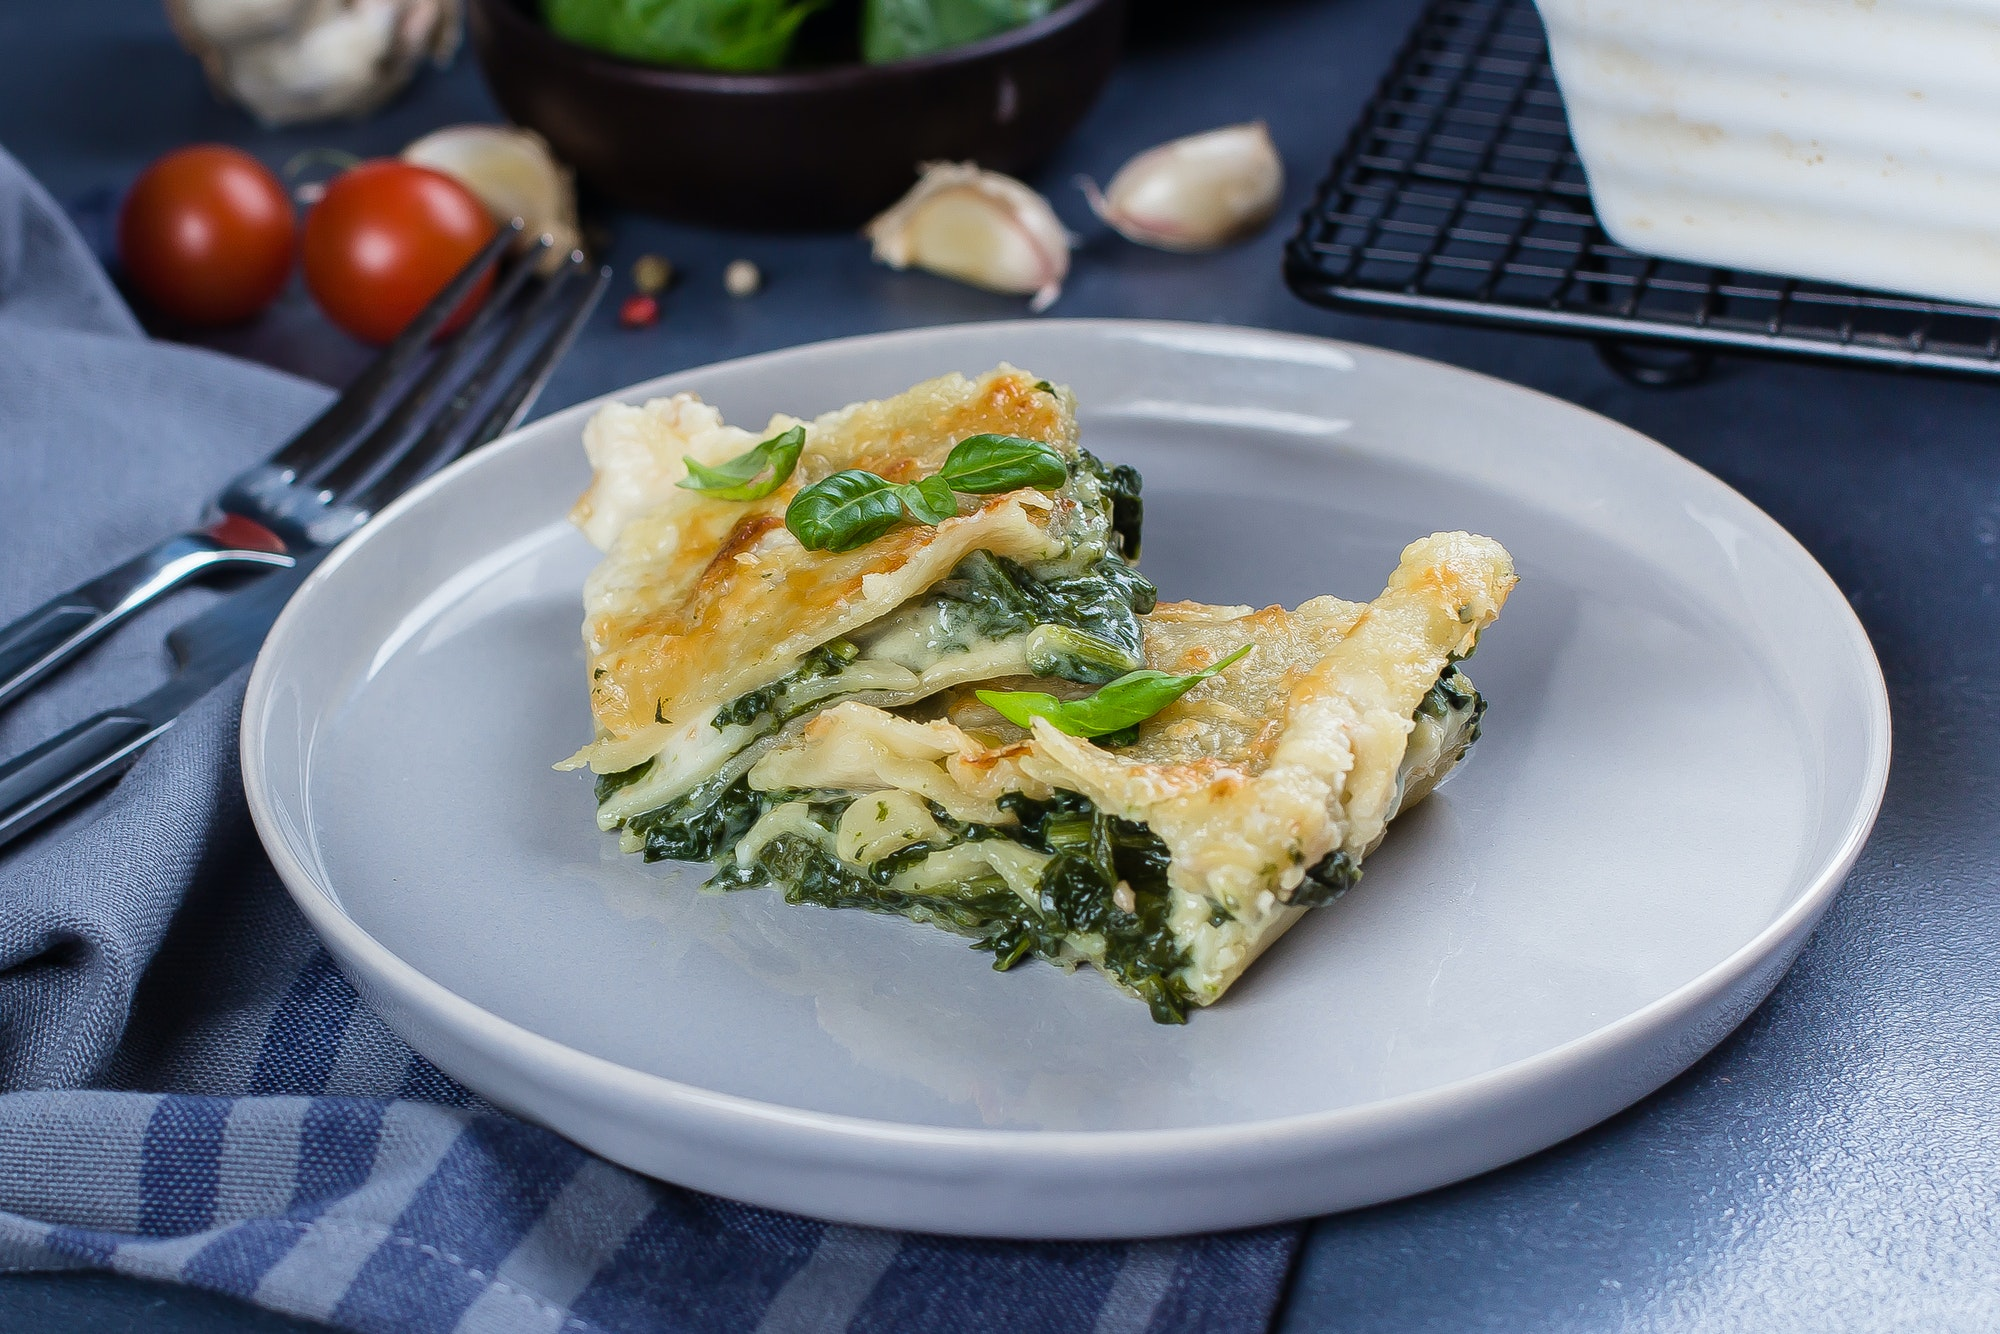 Delicious homemade lasagne with ricotta cheese and spinach on table . Vegetarian Food. Italian Food